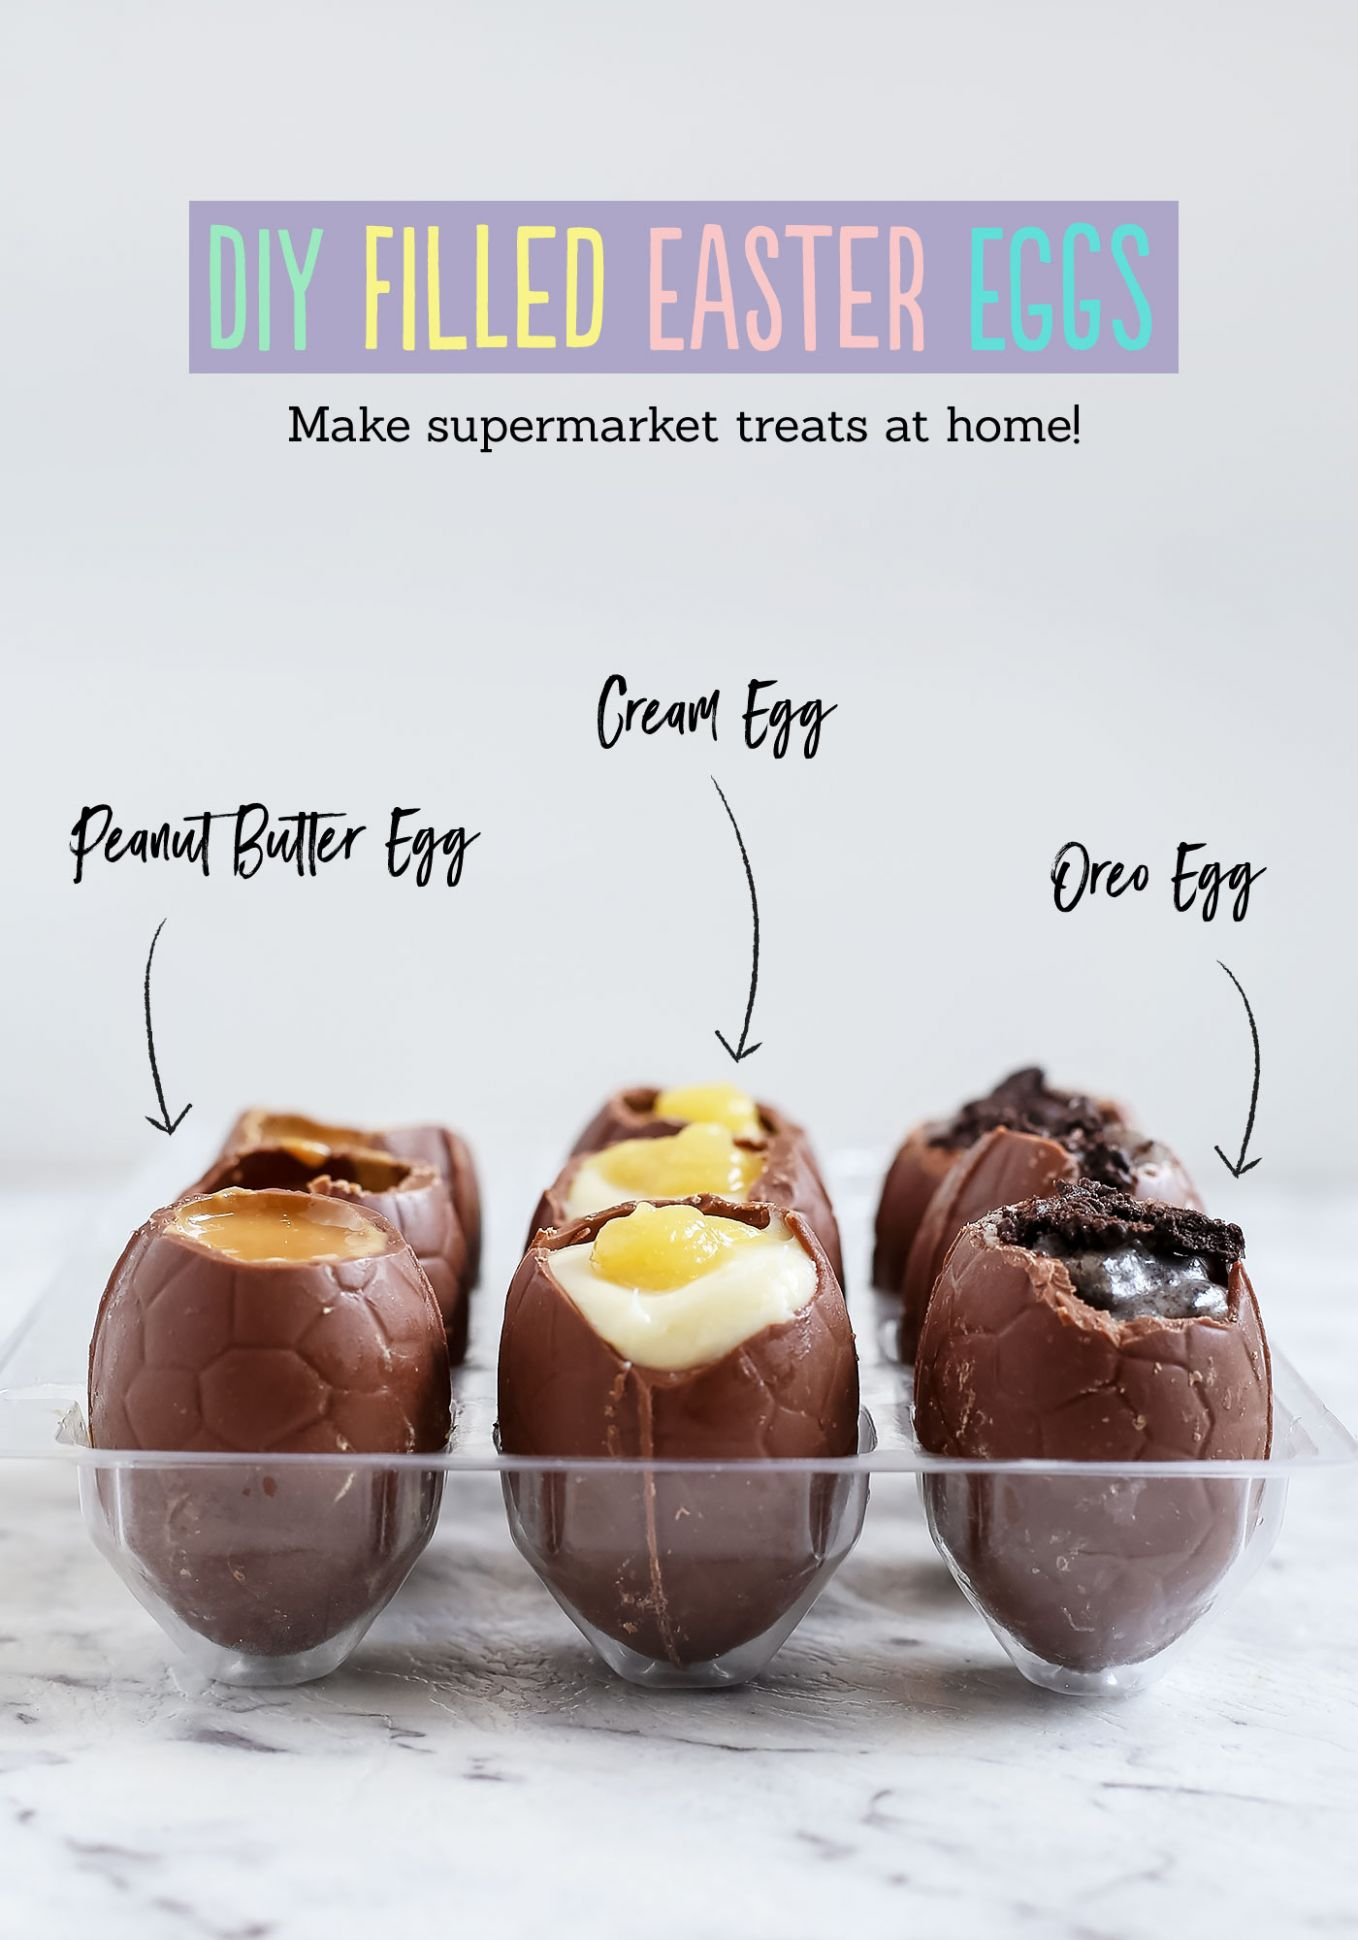 DIY Filled Easter Eggs - Recipe Chocolate Eggs